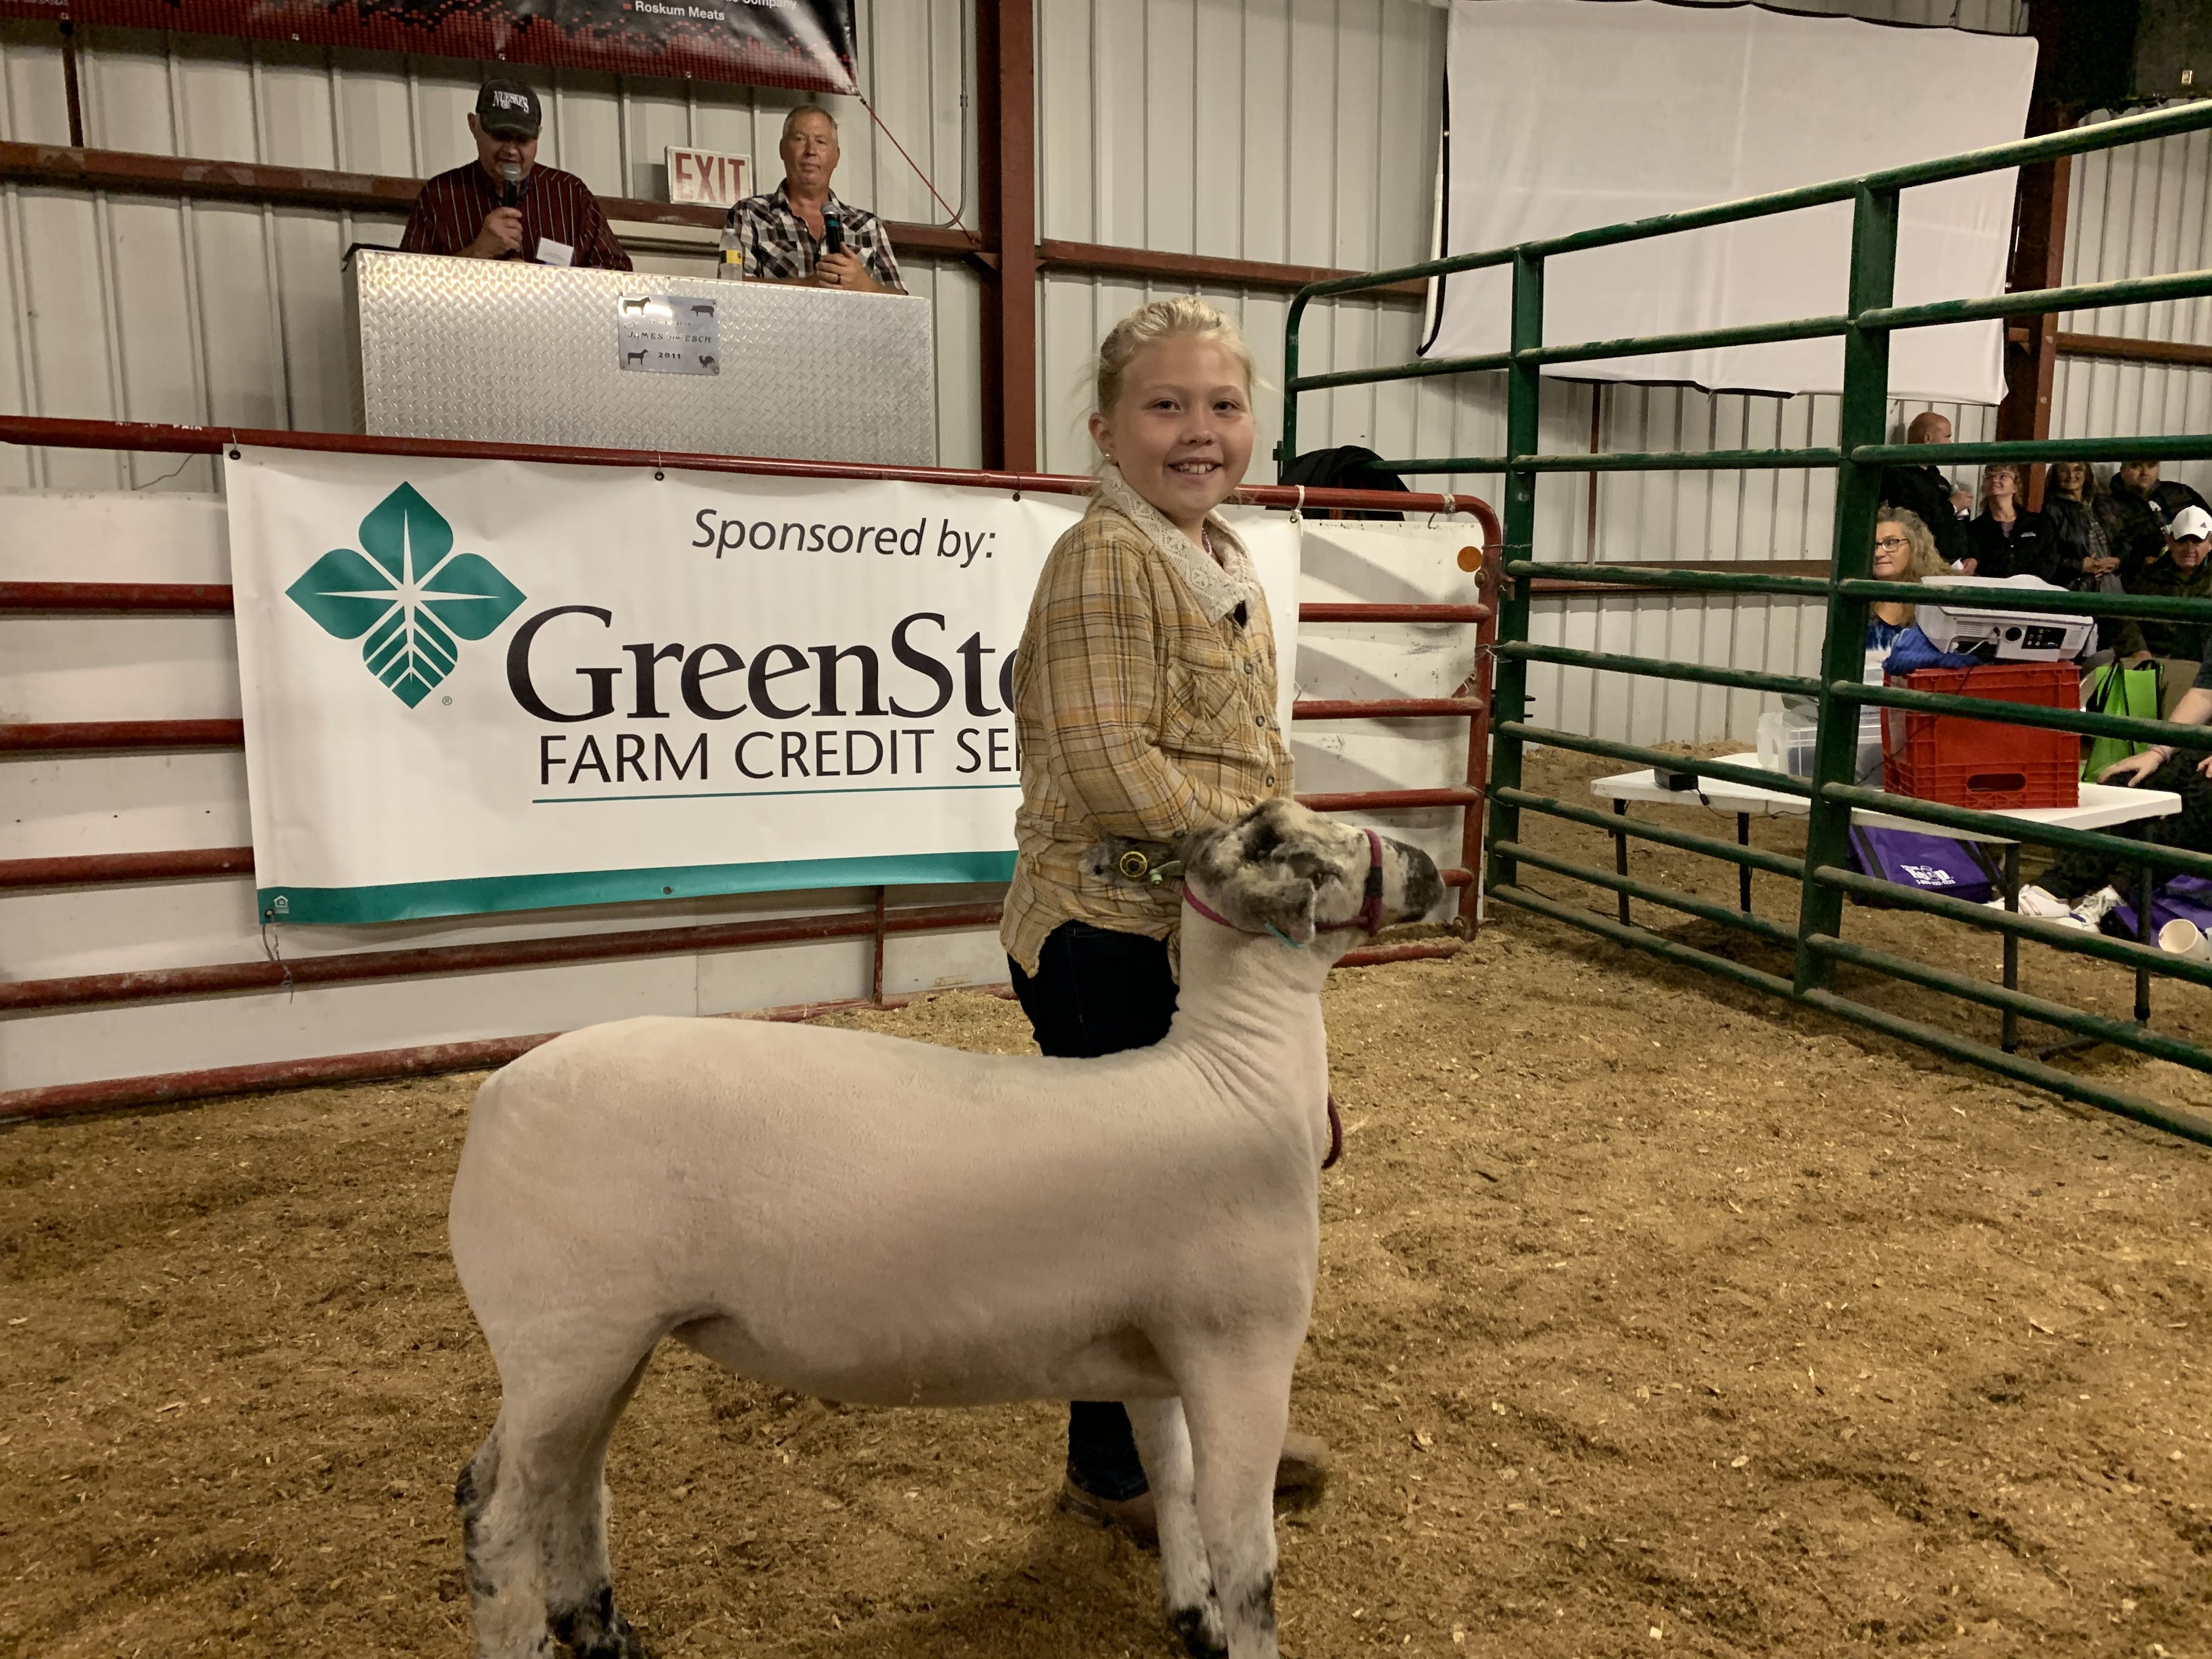 Green Valley resident and first year show participant Deanna Smith has a big smile on her face as she walks her sheep around for the first time during the livestock auction at the Shawano County Fair on Sept. 3.Luke Reimer | NEW Media